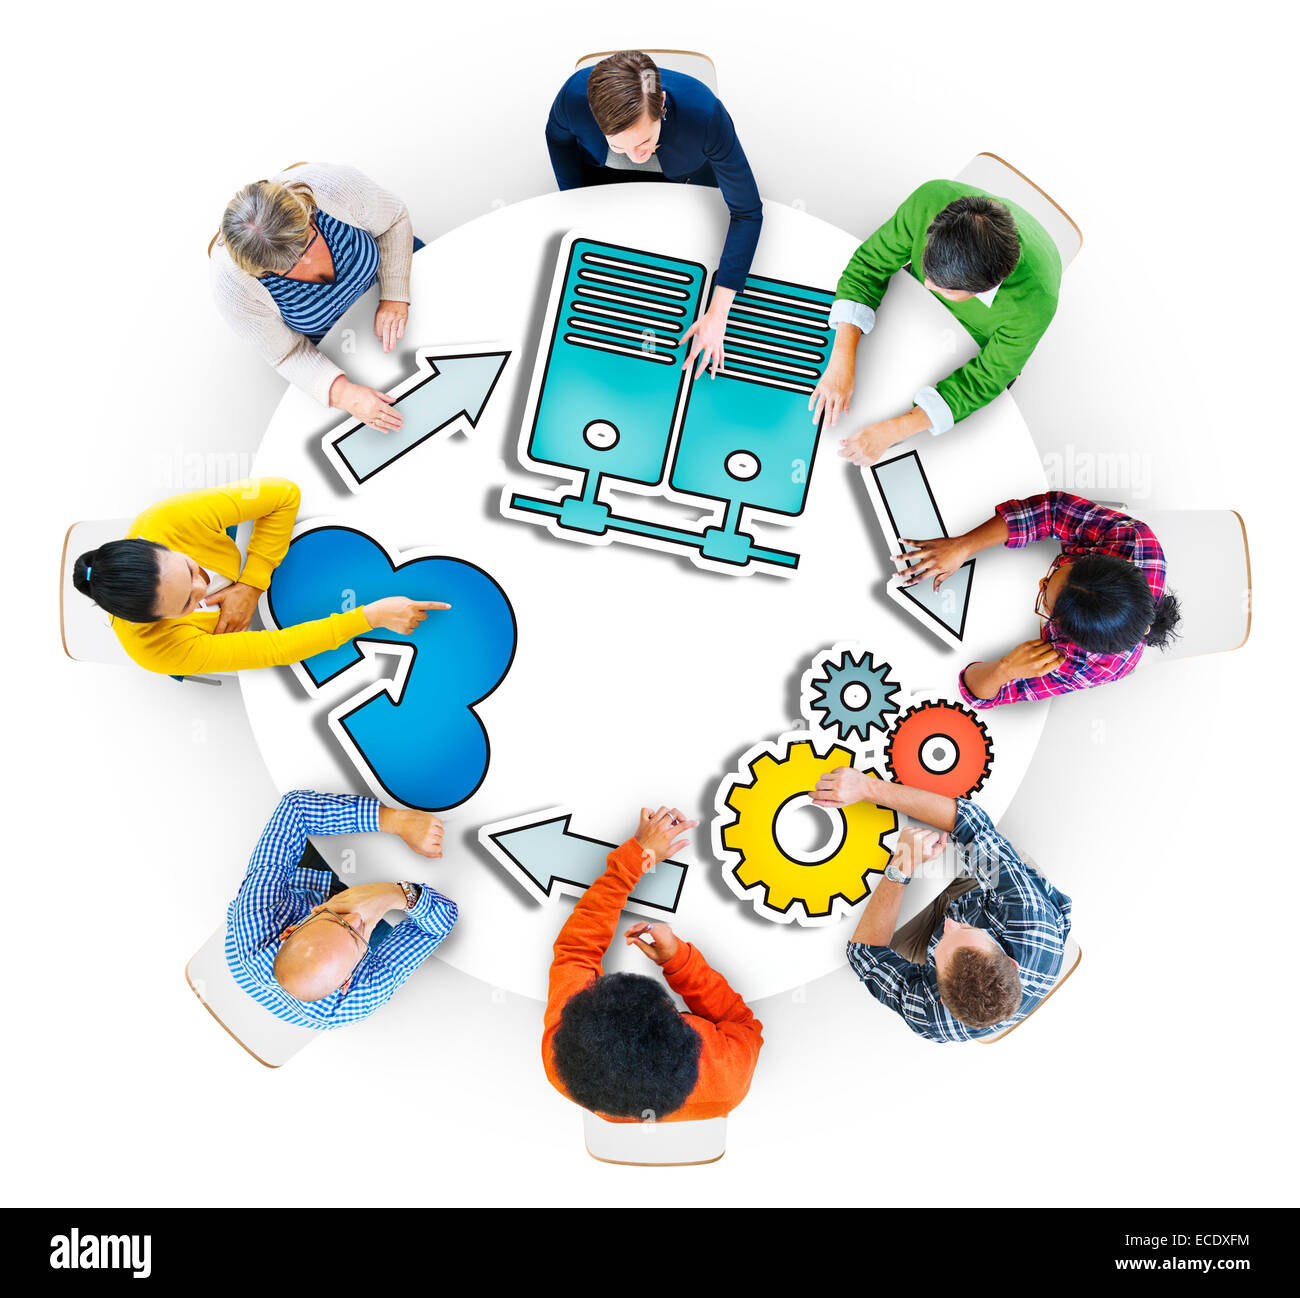 Group of People Brainstorming with System Concepts - Stock Image